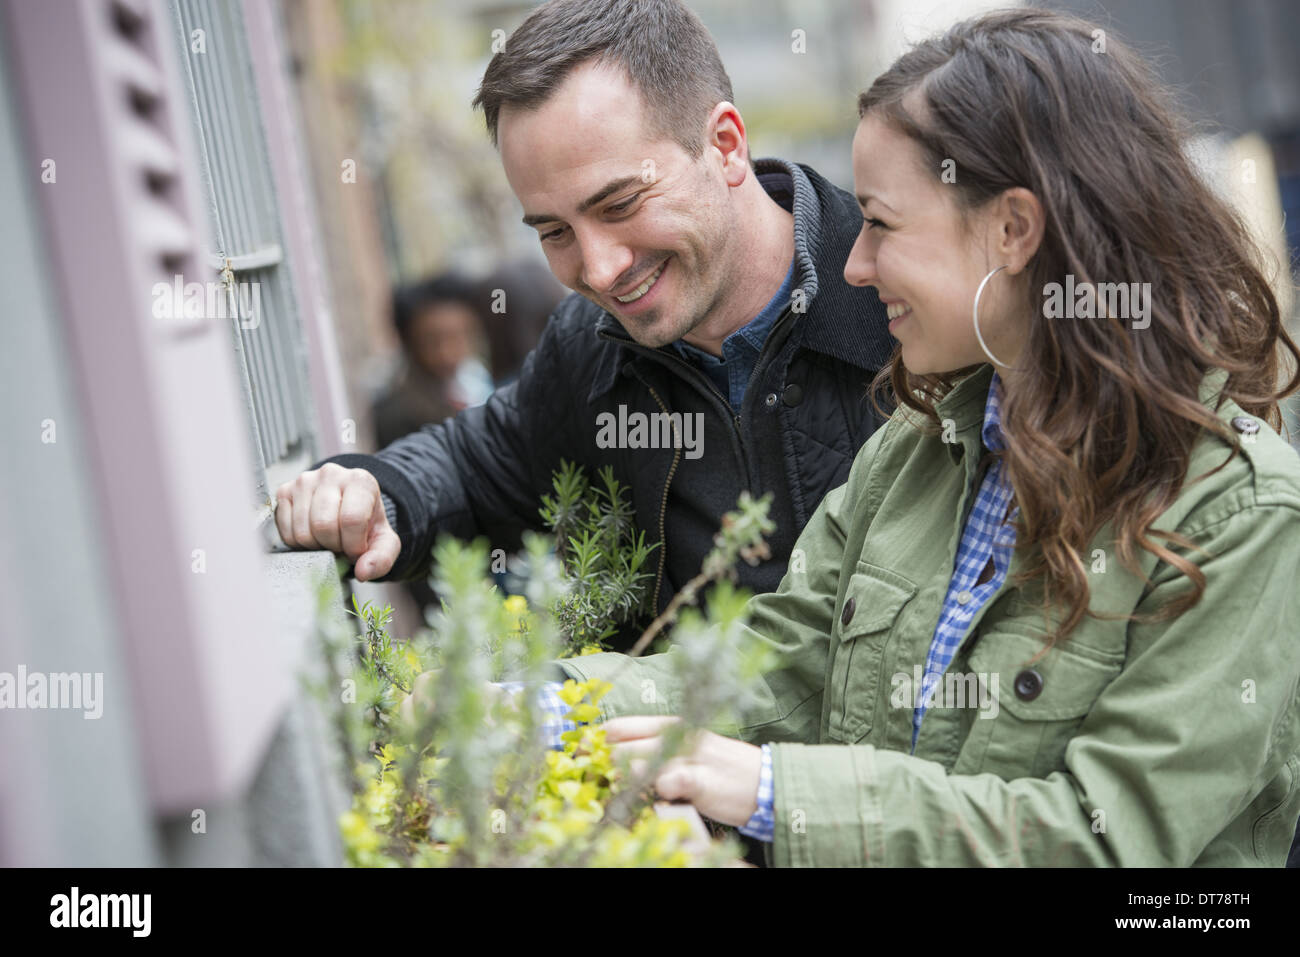 A man and a woman tending a window box on a city street. Spring flowers. - Stock Image